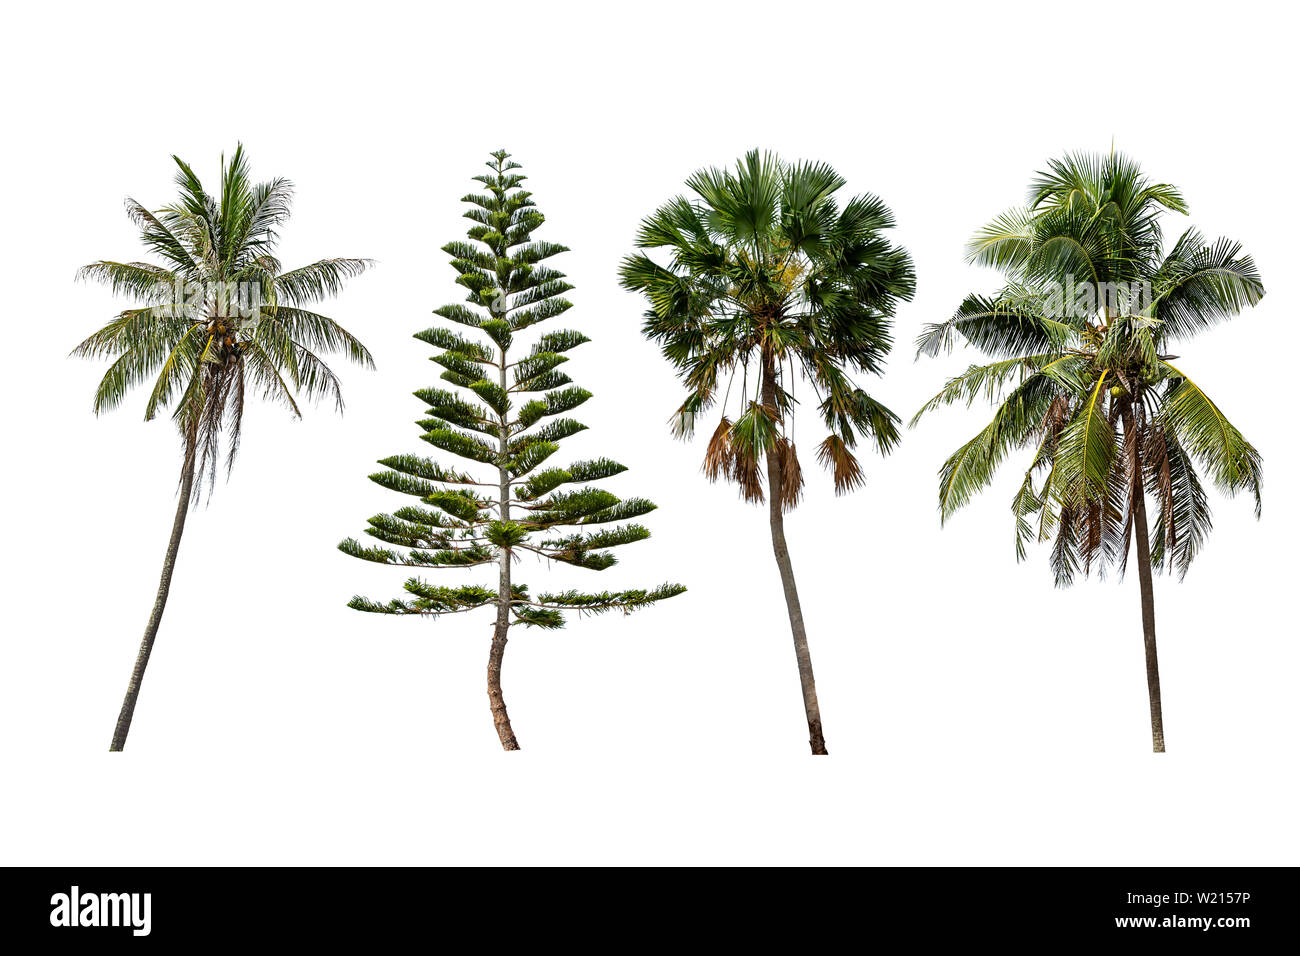 Isolated coconut trees , Pinus and Palm trees on a white background with clipping path. Stock Photo